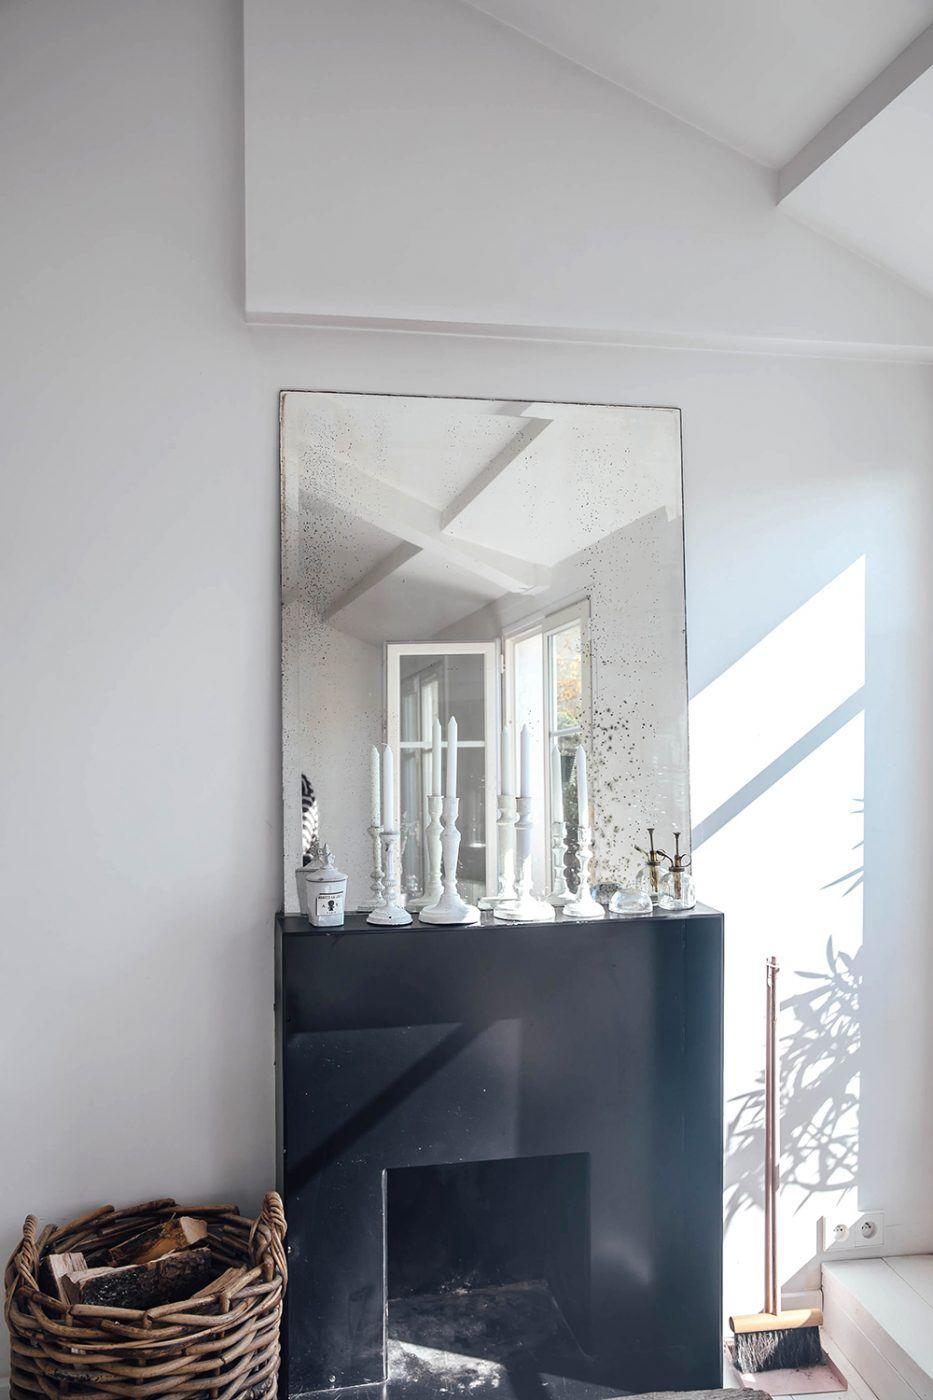 Home Tour Zoe de Las Cases Paris 19